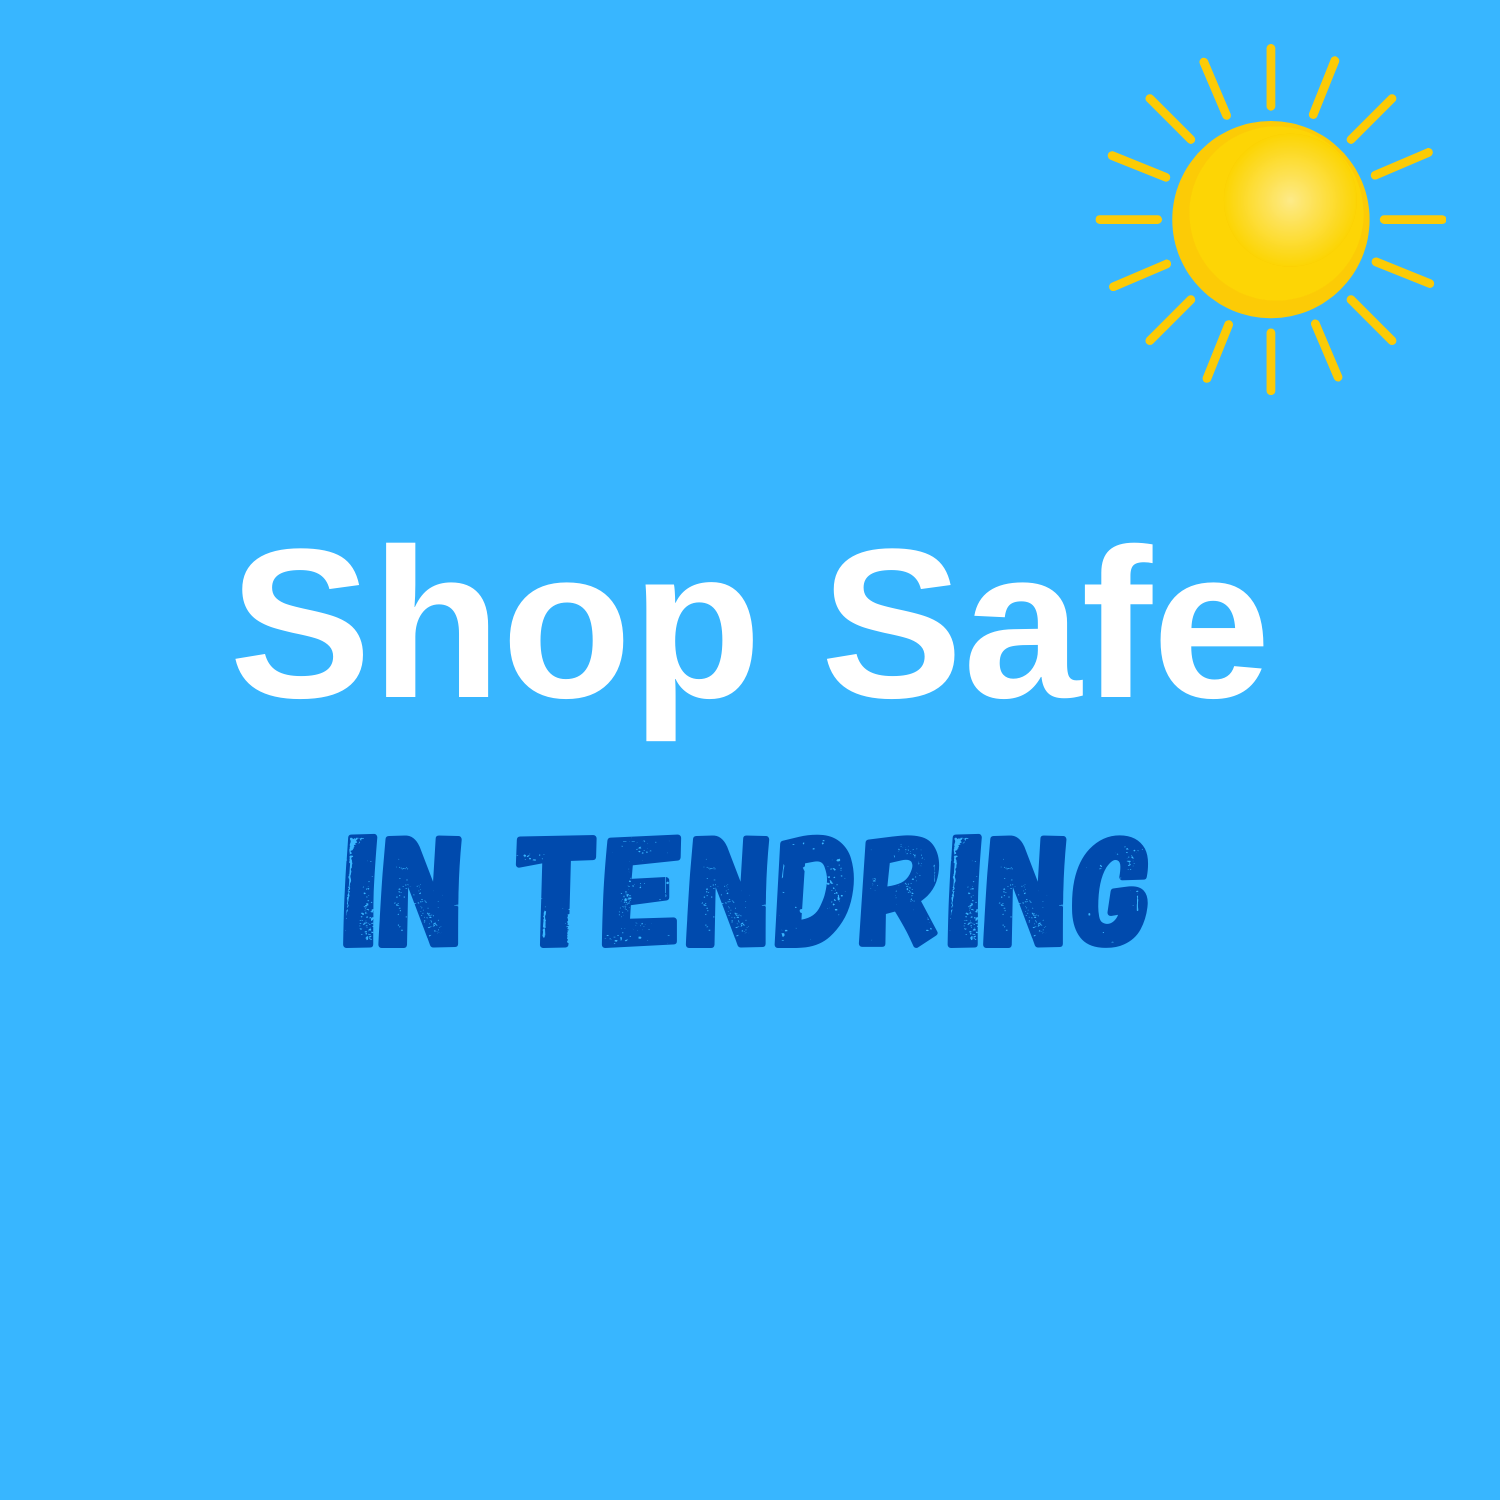 Shop Safe logo